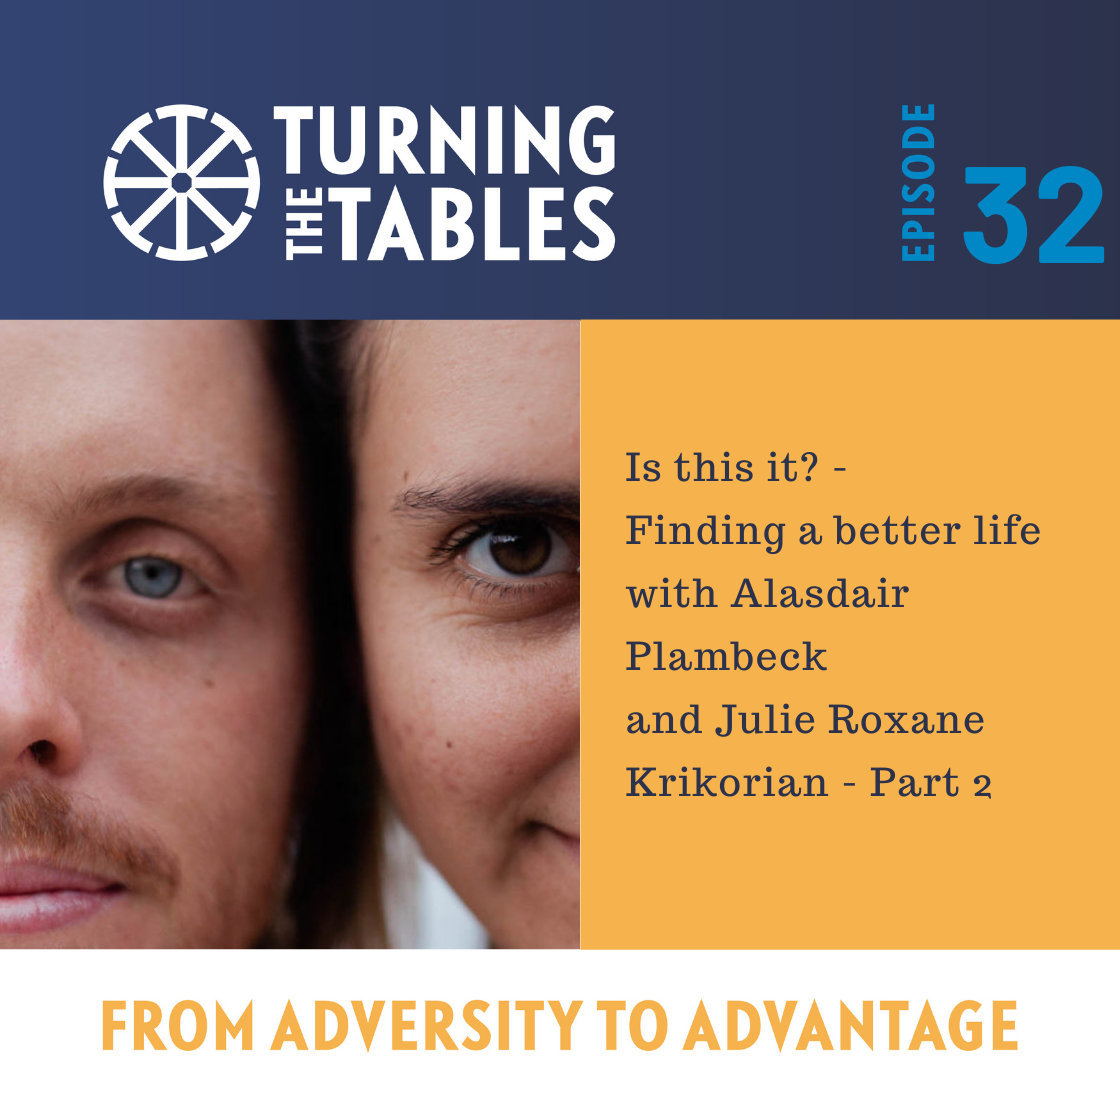 EP 32: Is this it? - Finding a better life with Alasdair Plambeck and Julie Roxane Krikorian part 2